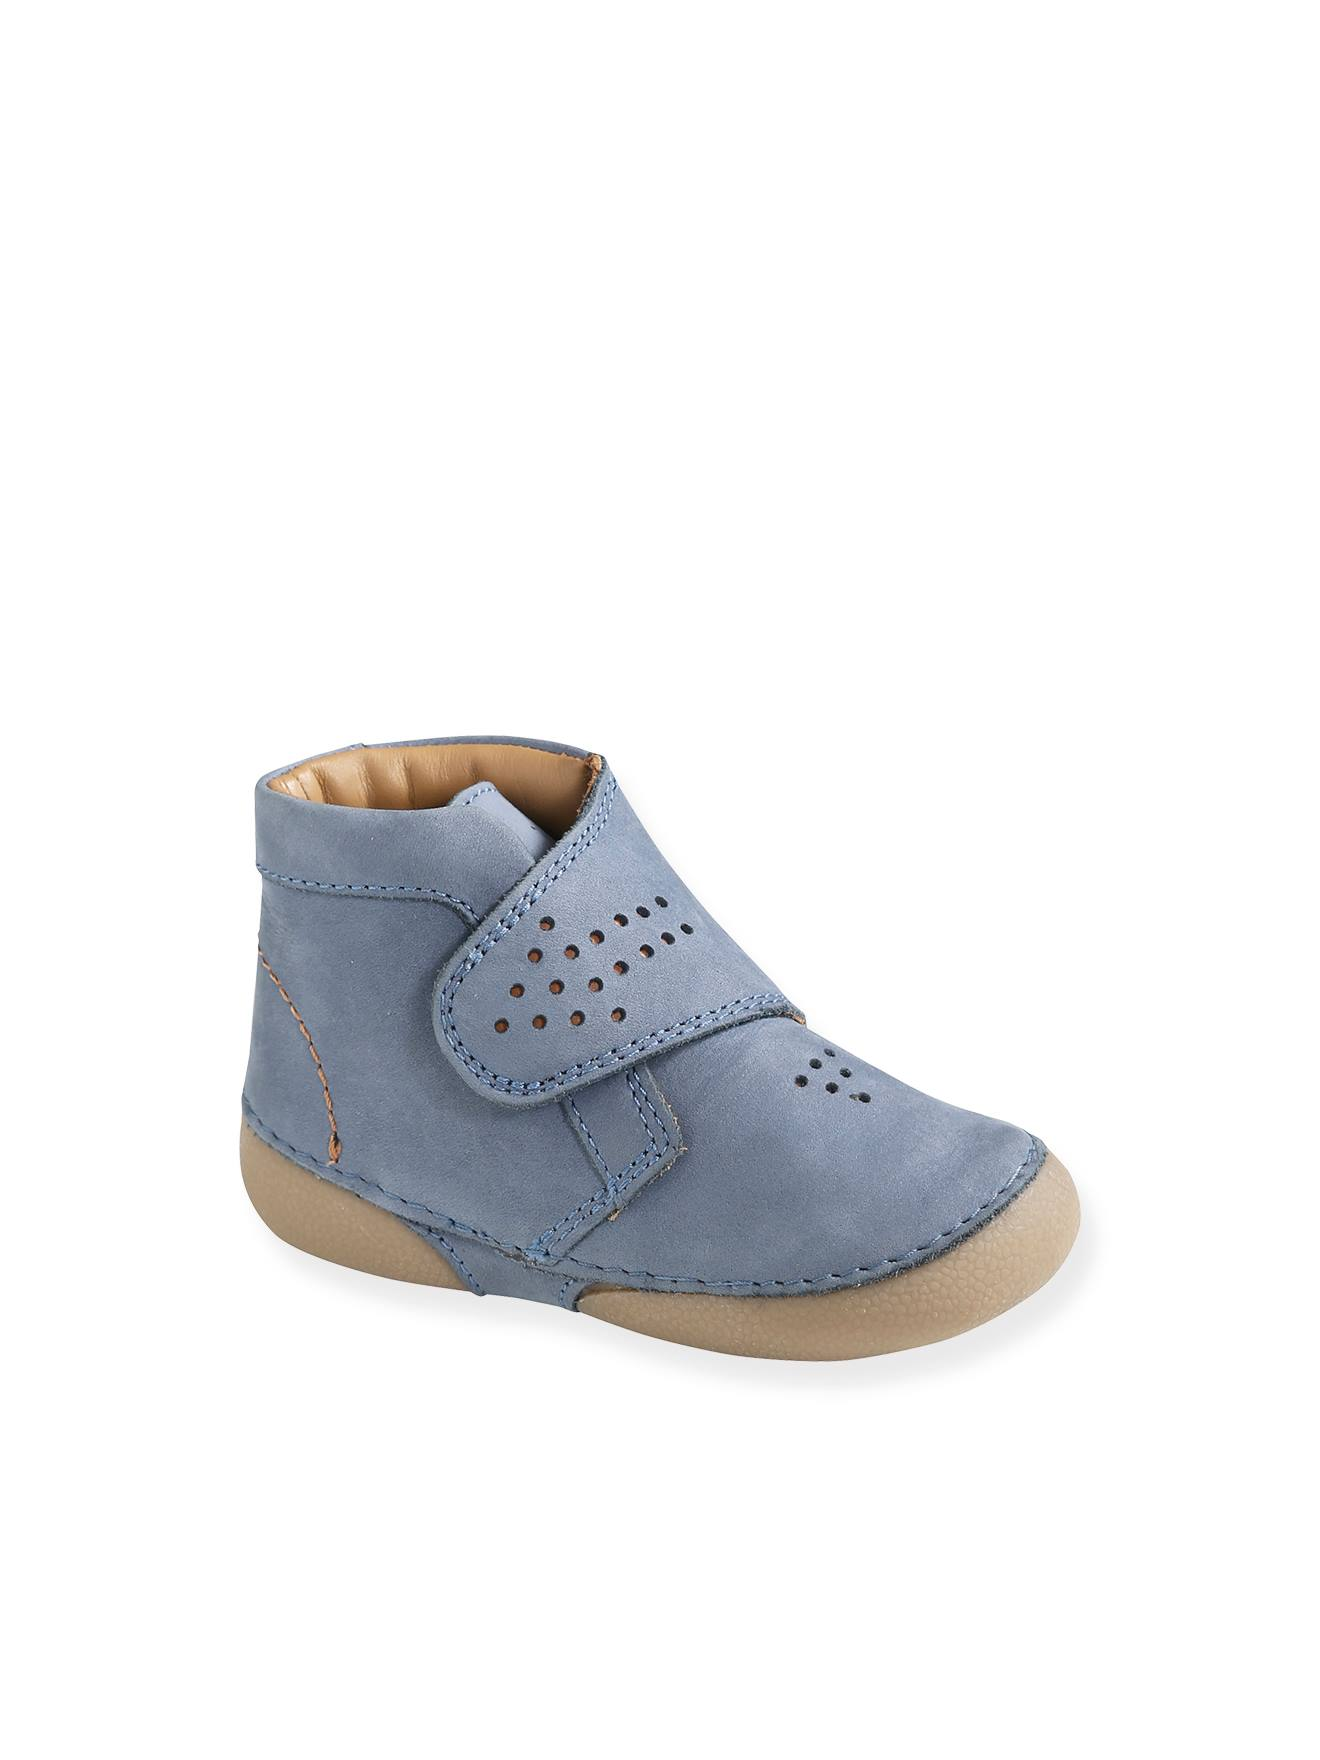 Soft Leather Ankle Boots for Baby Boys